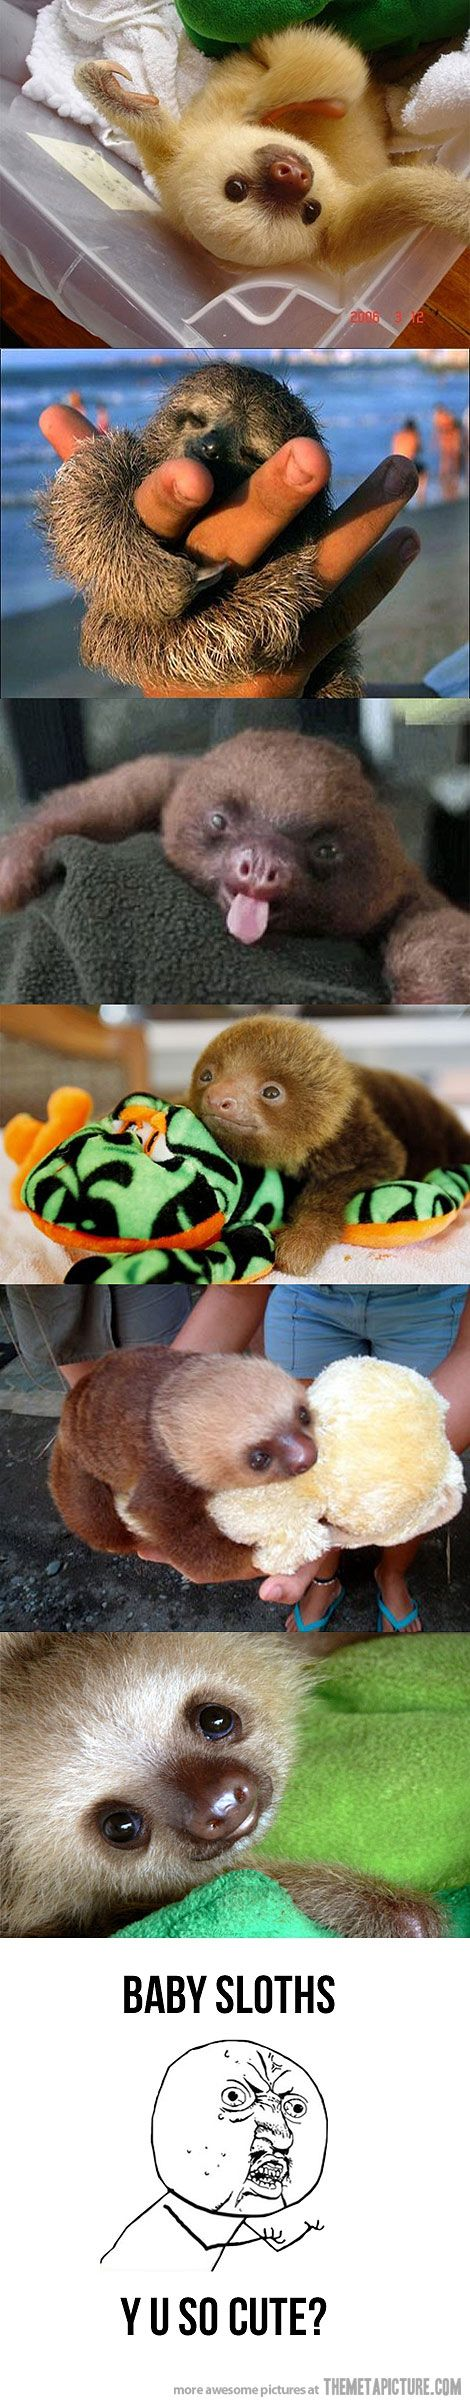 I ❤ BABY SLOTHS!!!!! SO ADORABLE!!!!